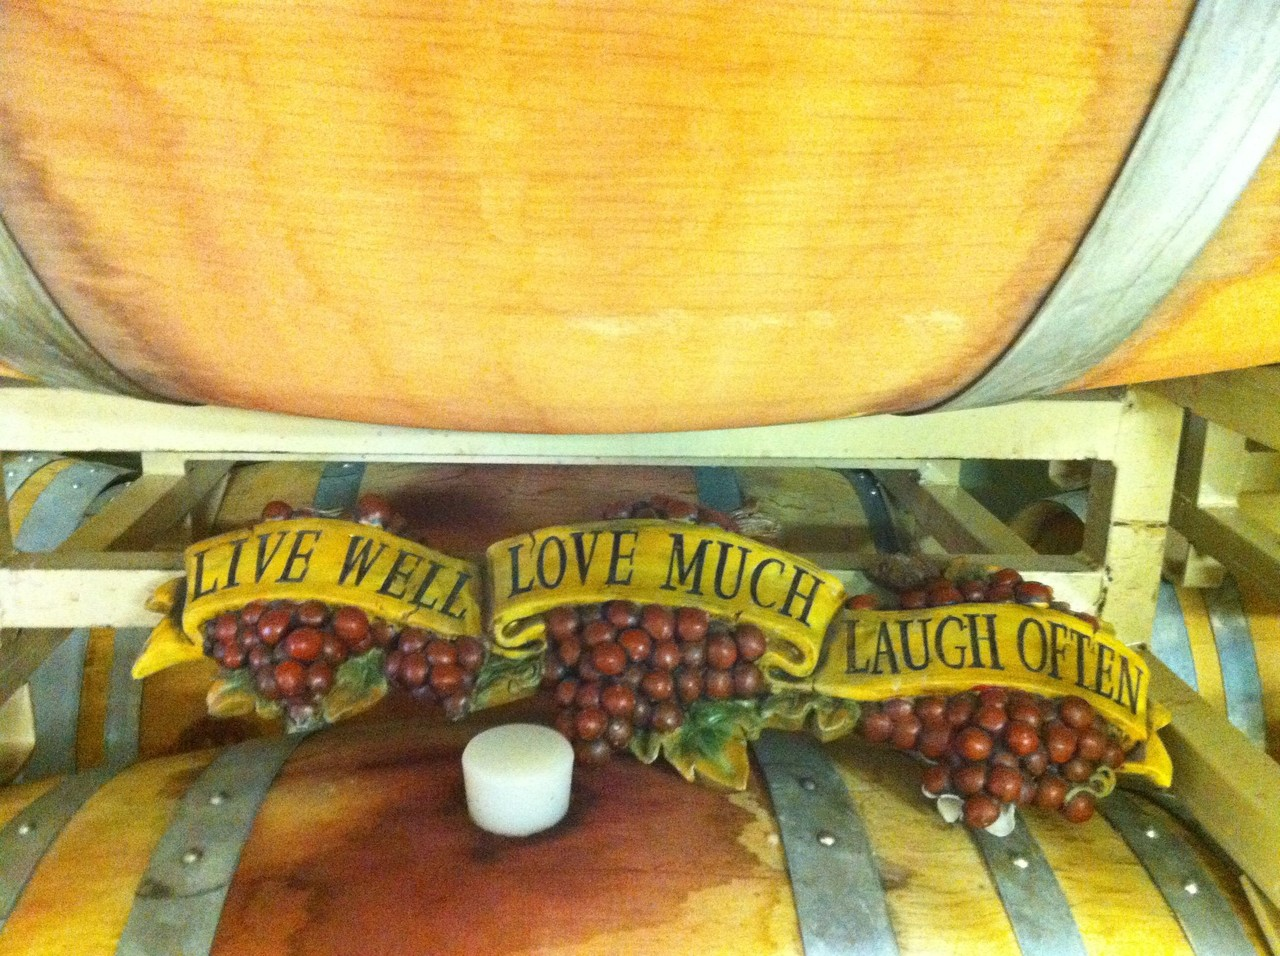 LIVE WELL, LOVE MUCH, LAUGH OFTEN Spotted at Wood Family Vineyards in Livermore, CA.